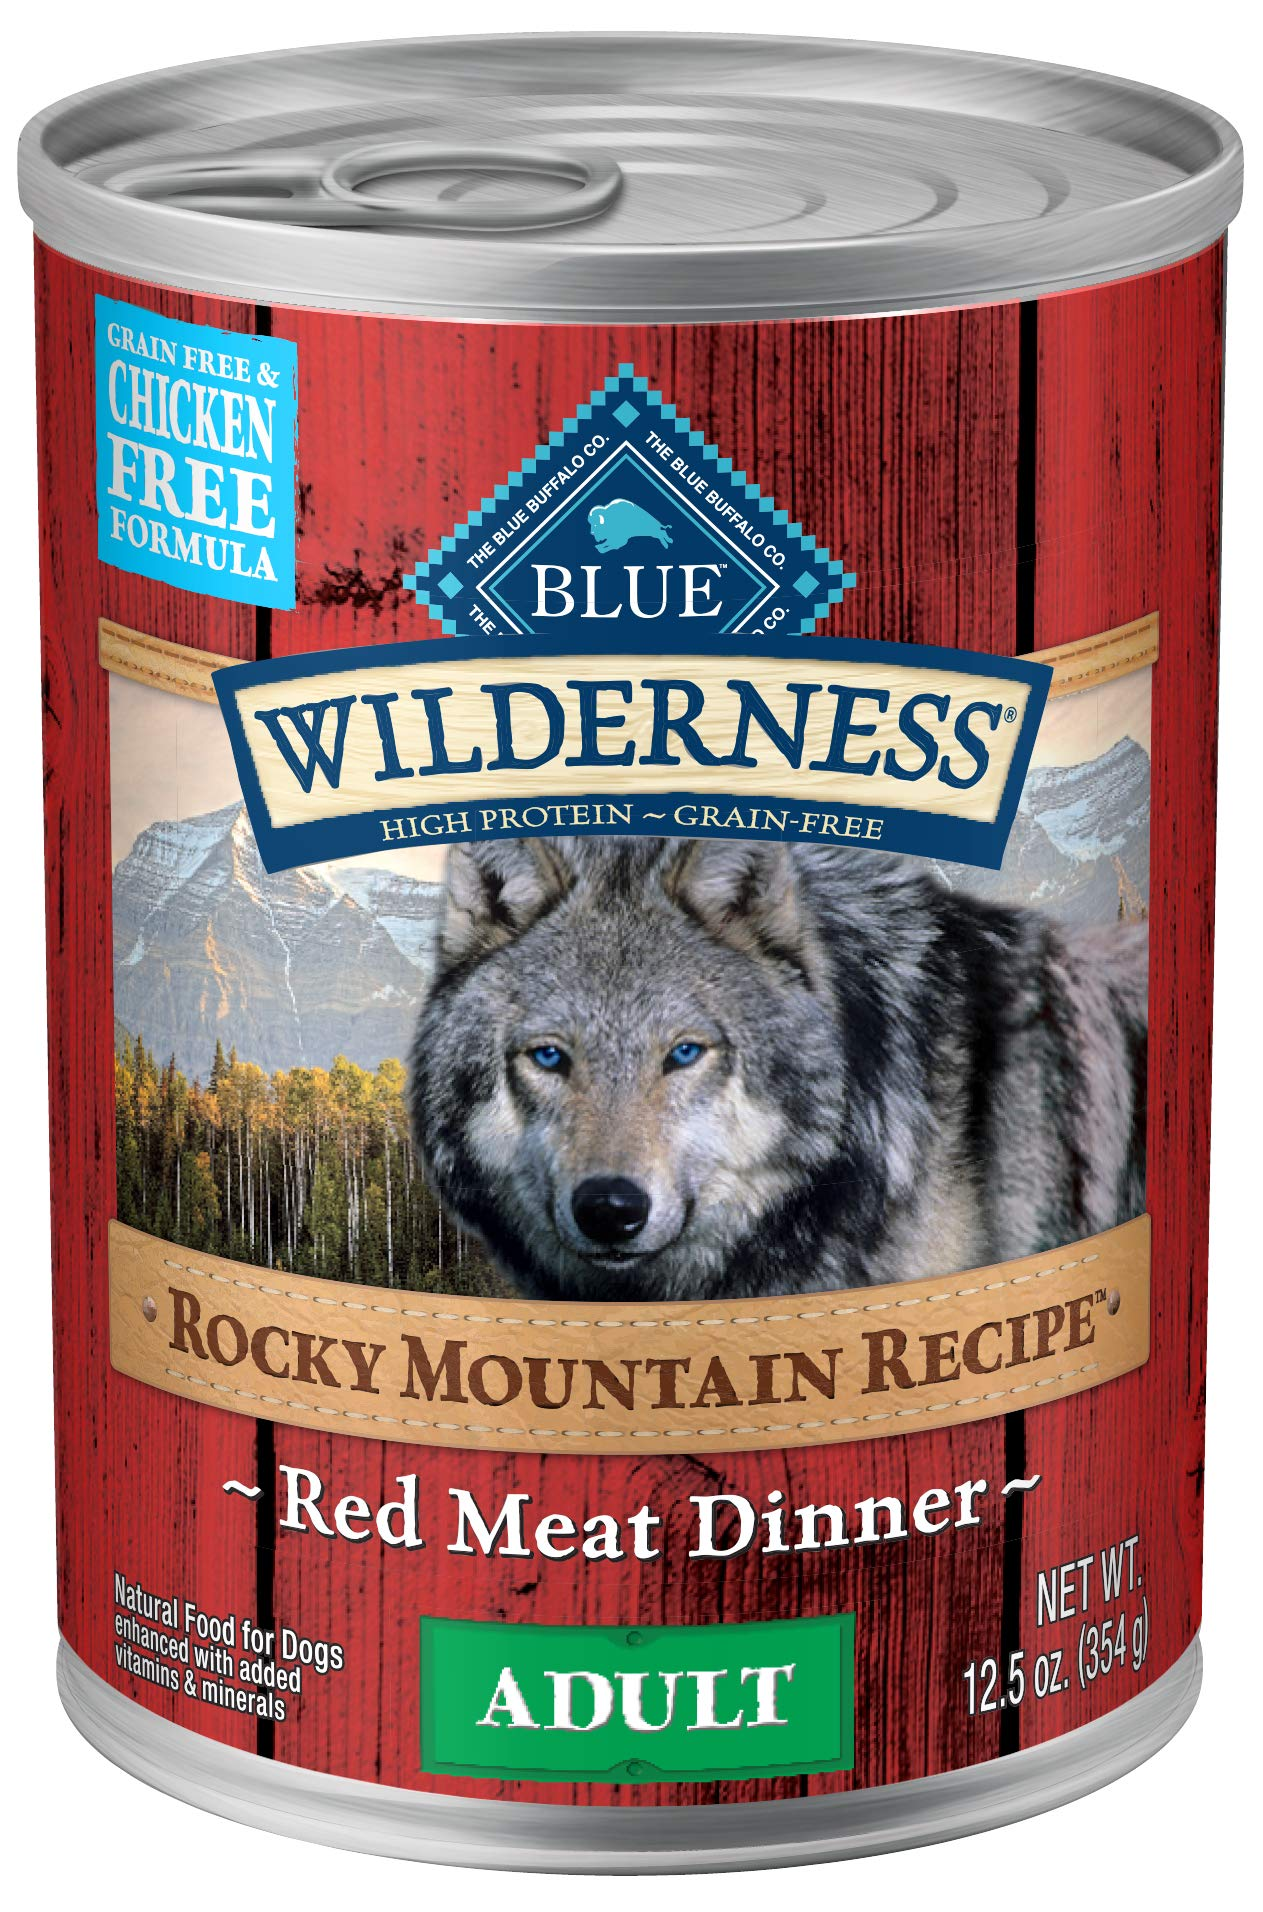 Blue Buffalo Wilderness Rocky Mountain Recipe High Protein Grain Free & chicken free, Natural Adult Wet Dog Food, Red Meat 12.5-oz can (pack of 12) by Blue Buffalo